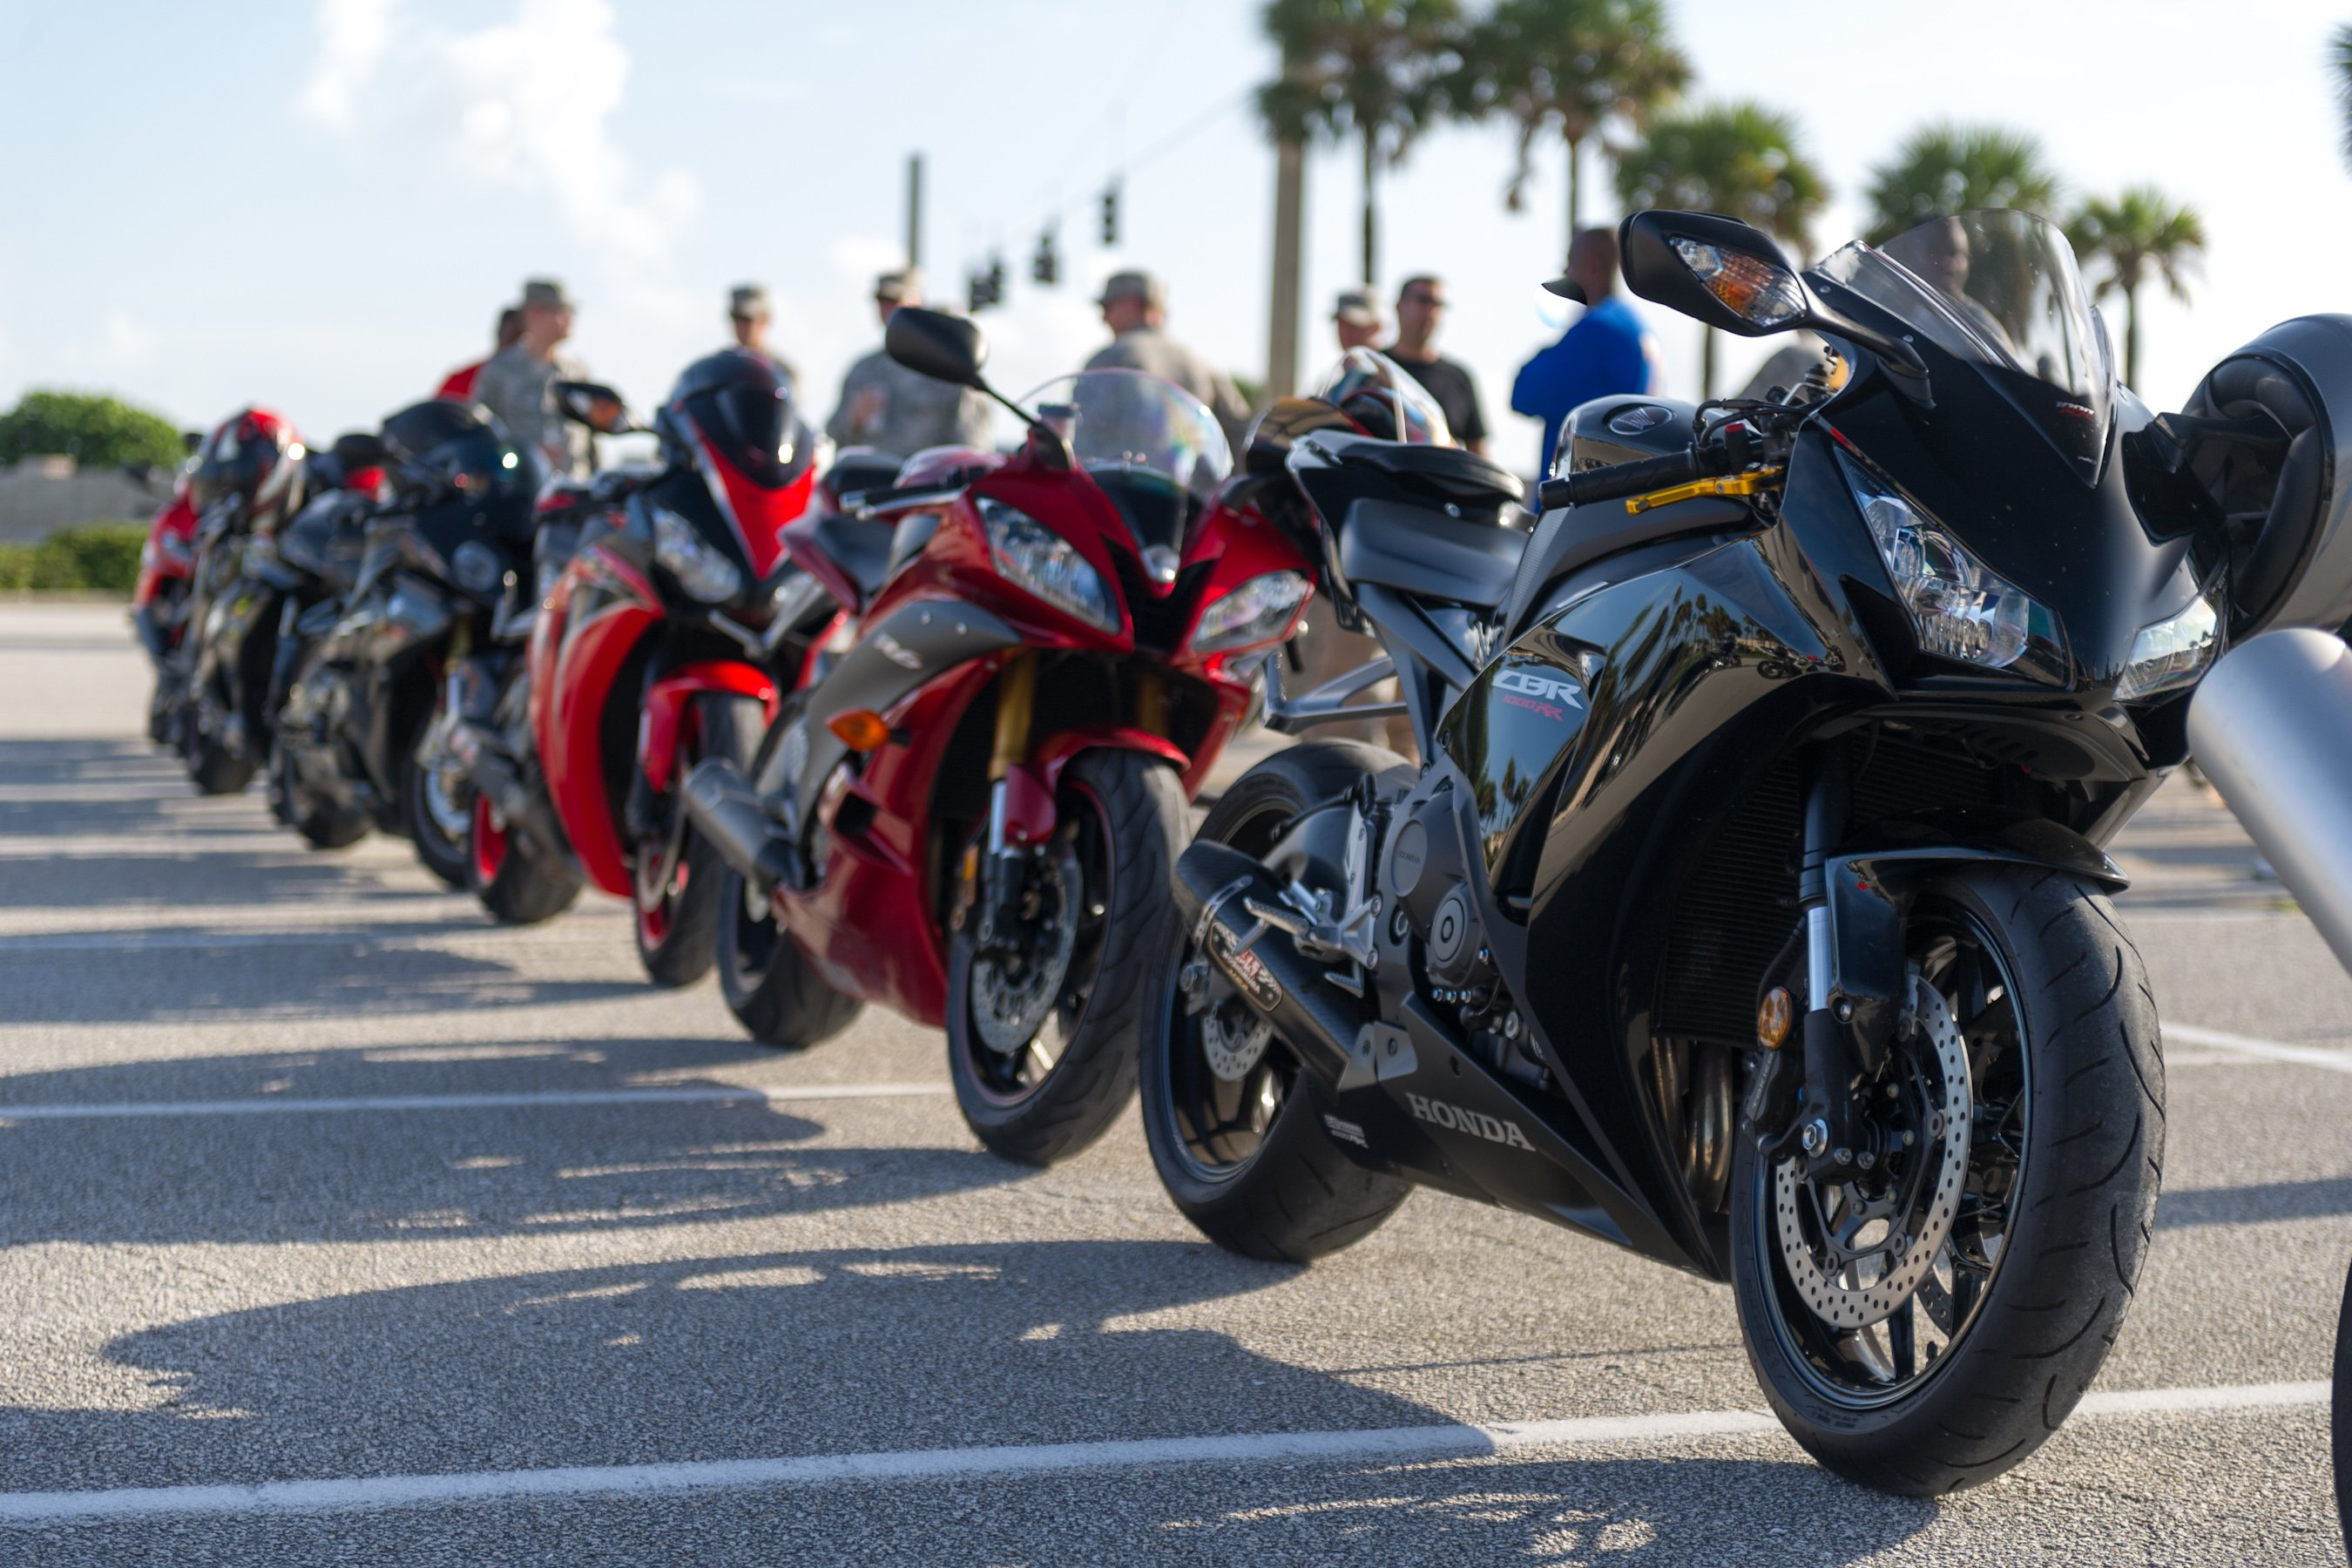 Bikers, Rev Your Engines: It's National Motorcycle Safety Month